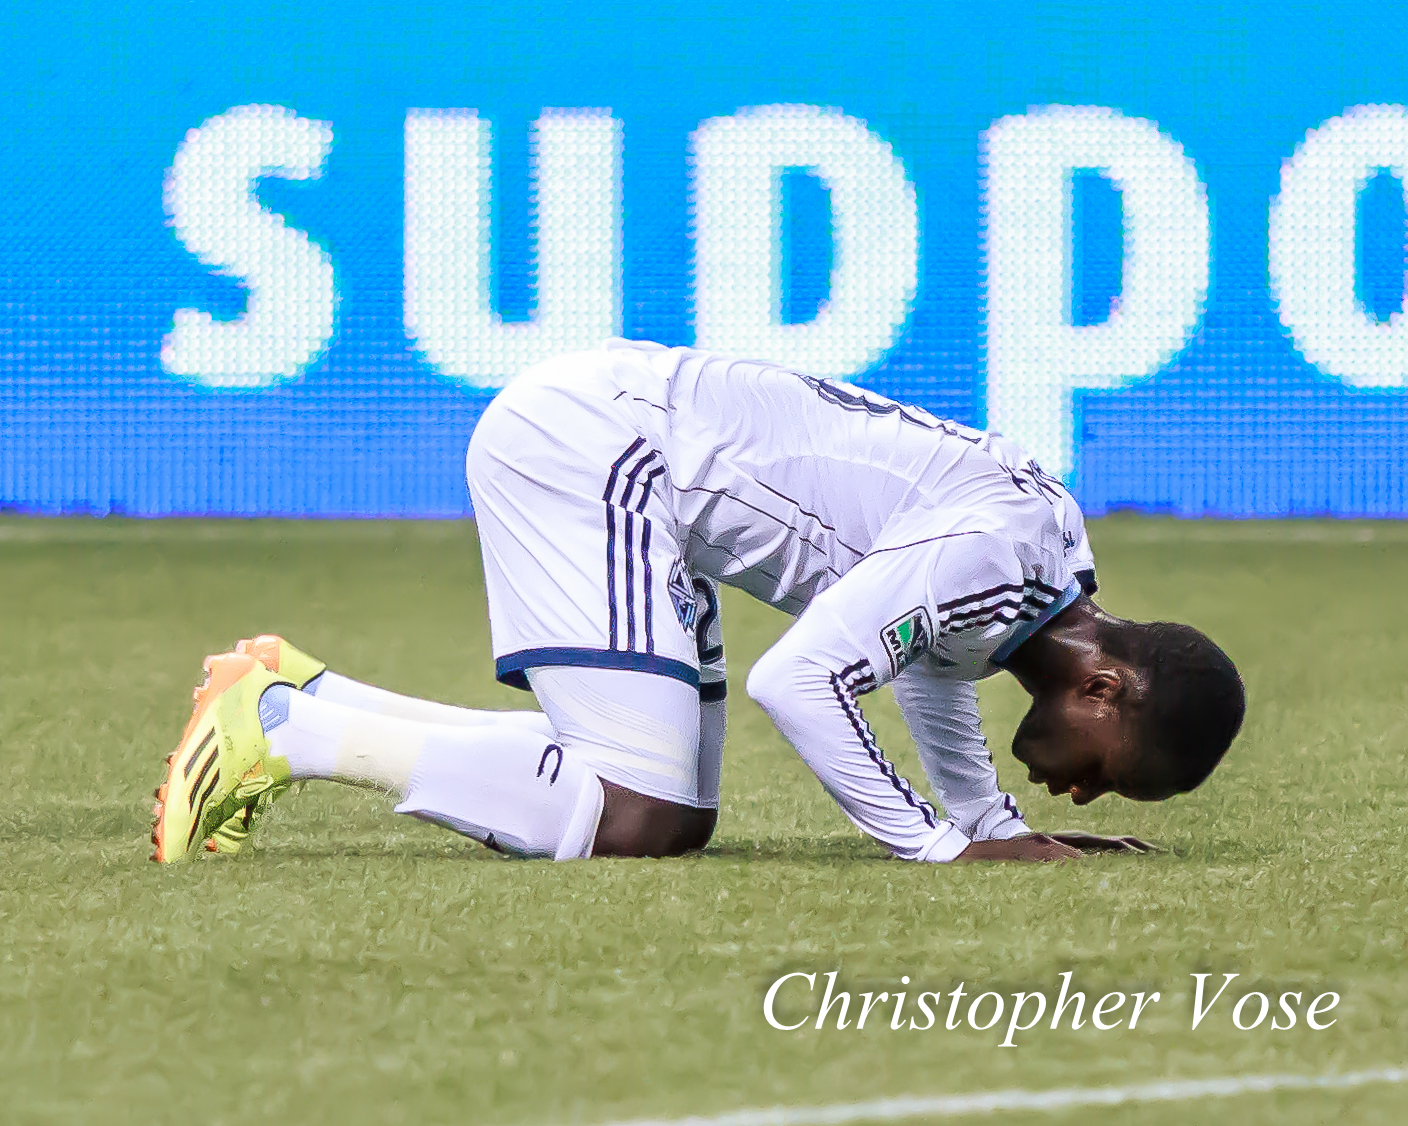 2014-04-19 Kekuta Manneh Goal Celebration 1.jpg